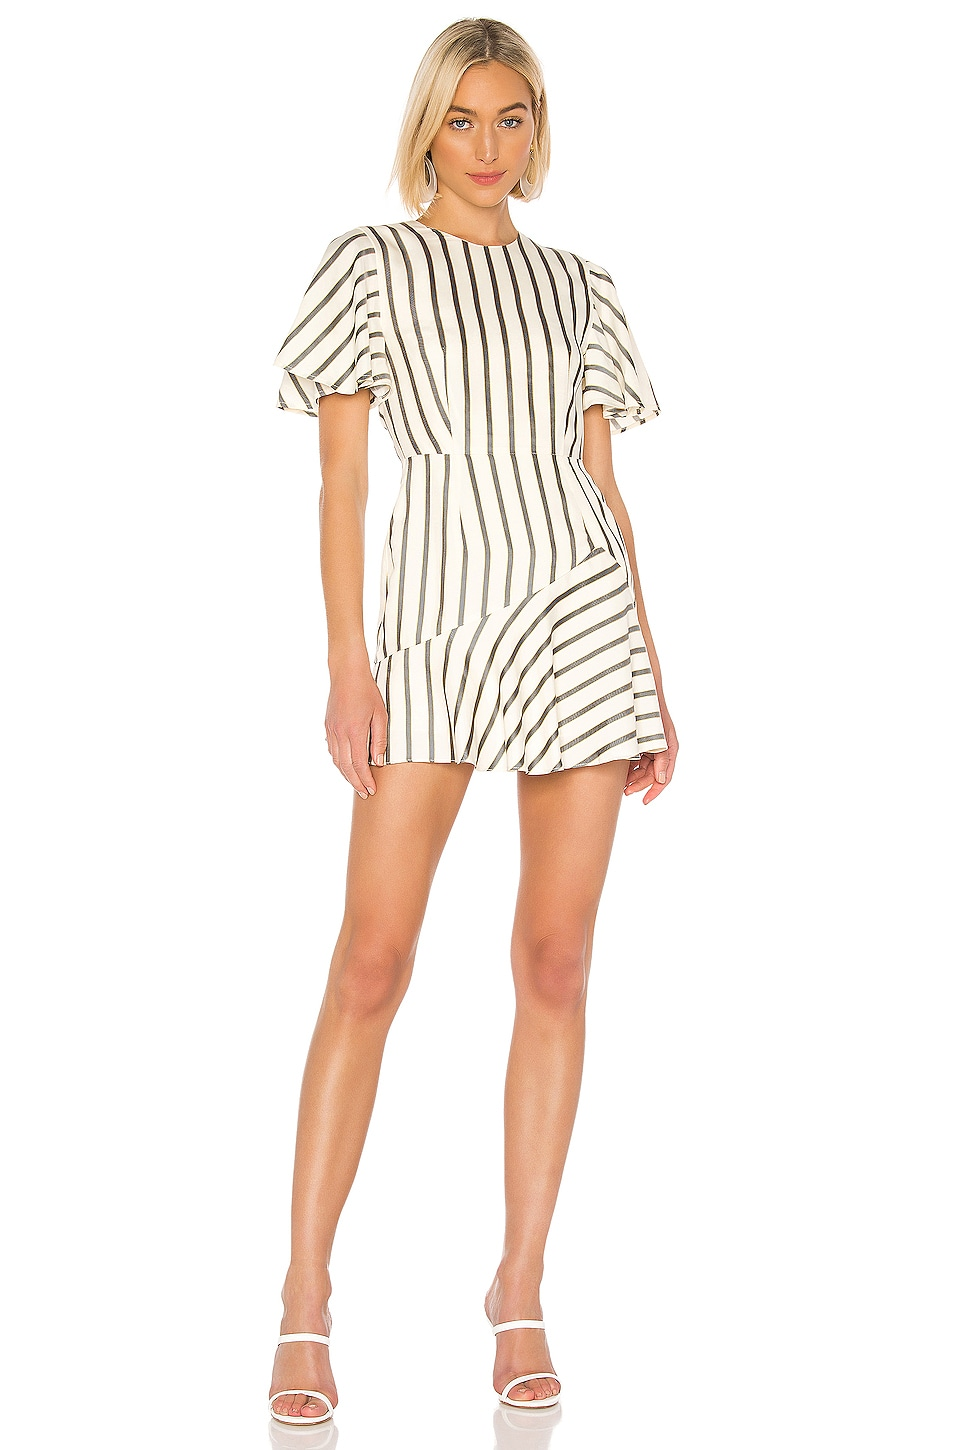 House of Harlow 1960 X REVOLVE Calvin Dress in Ivory & Black Stripe